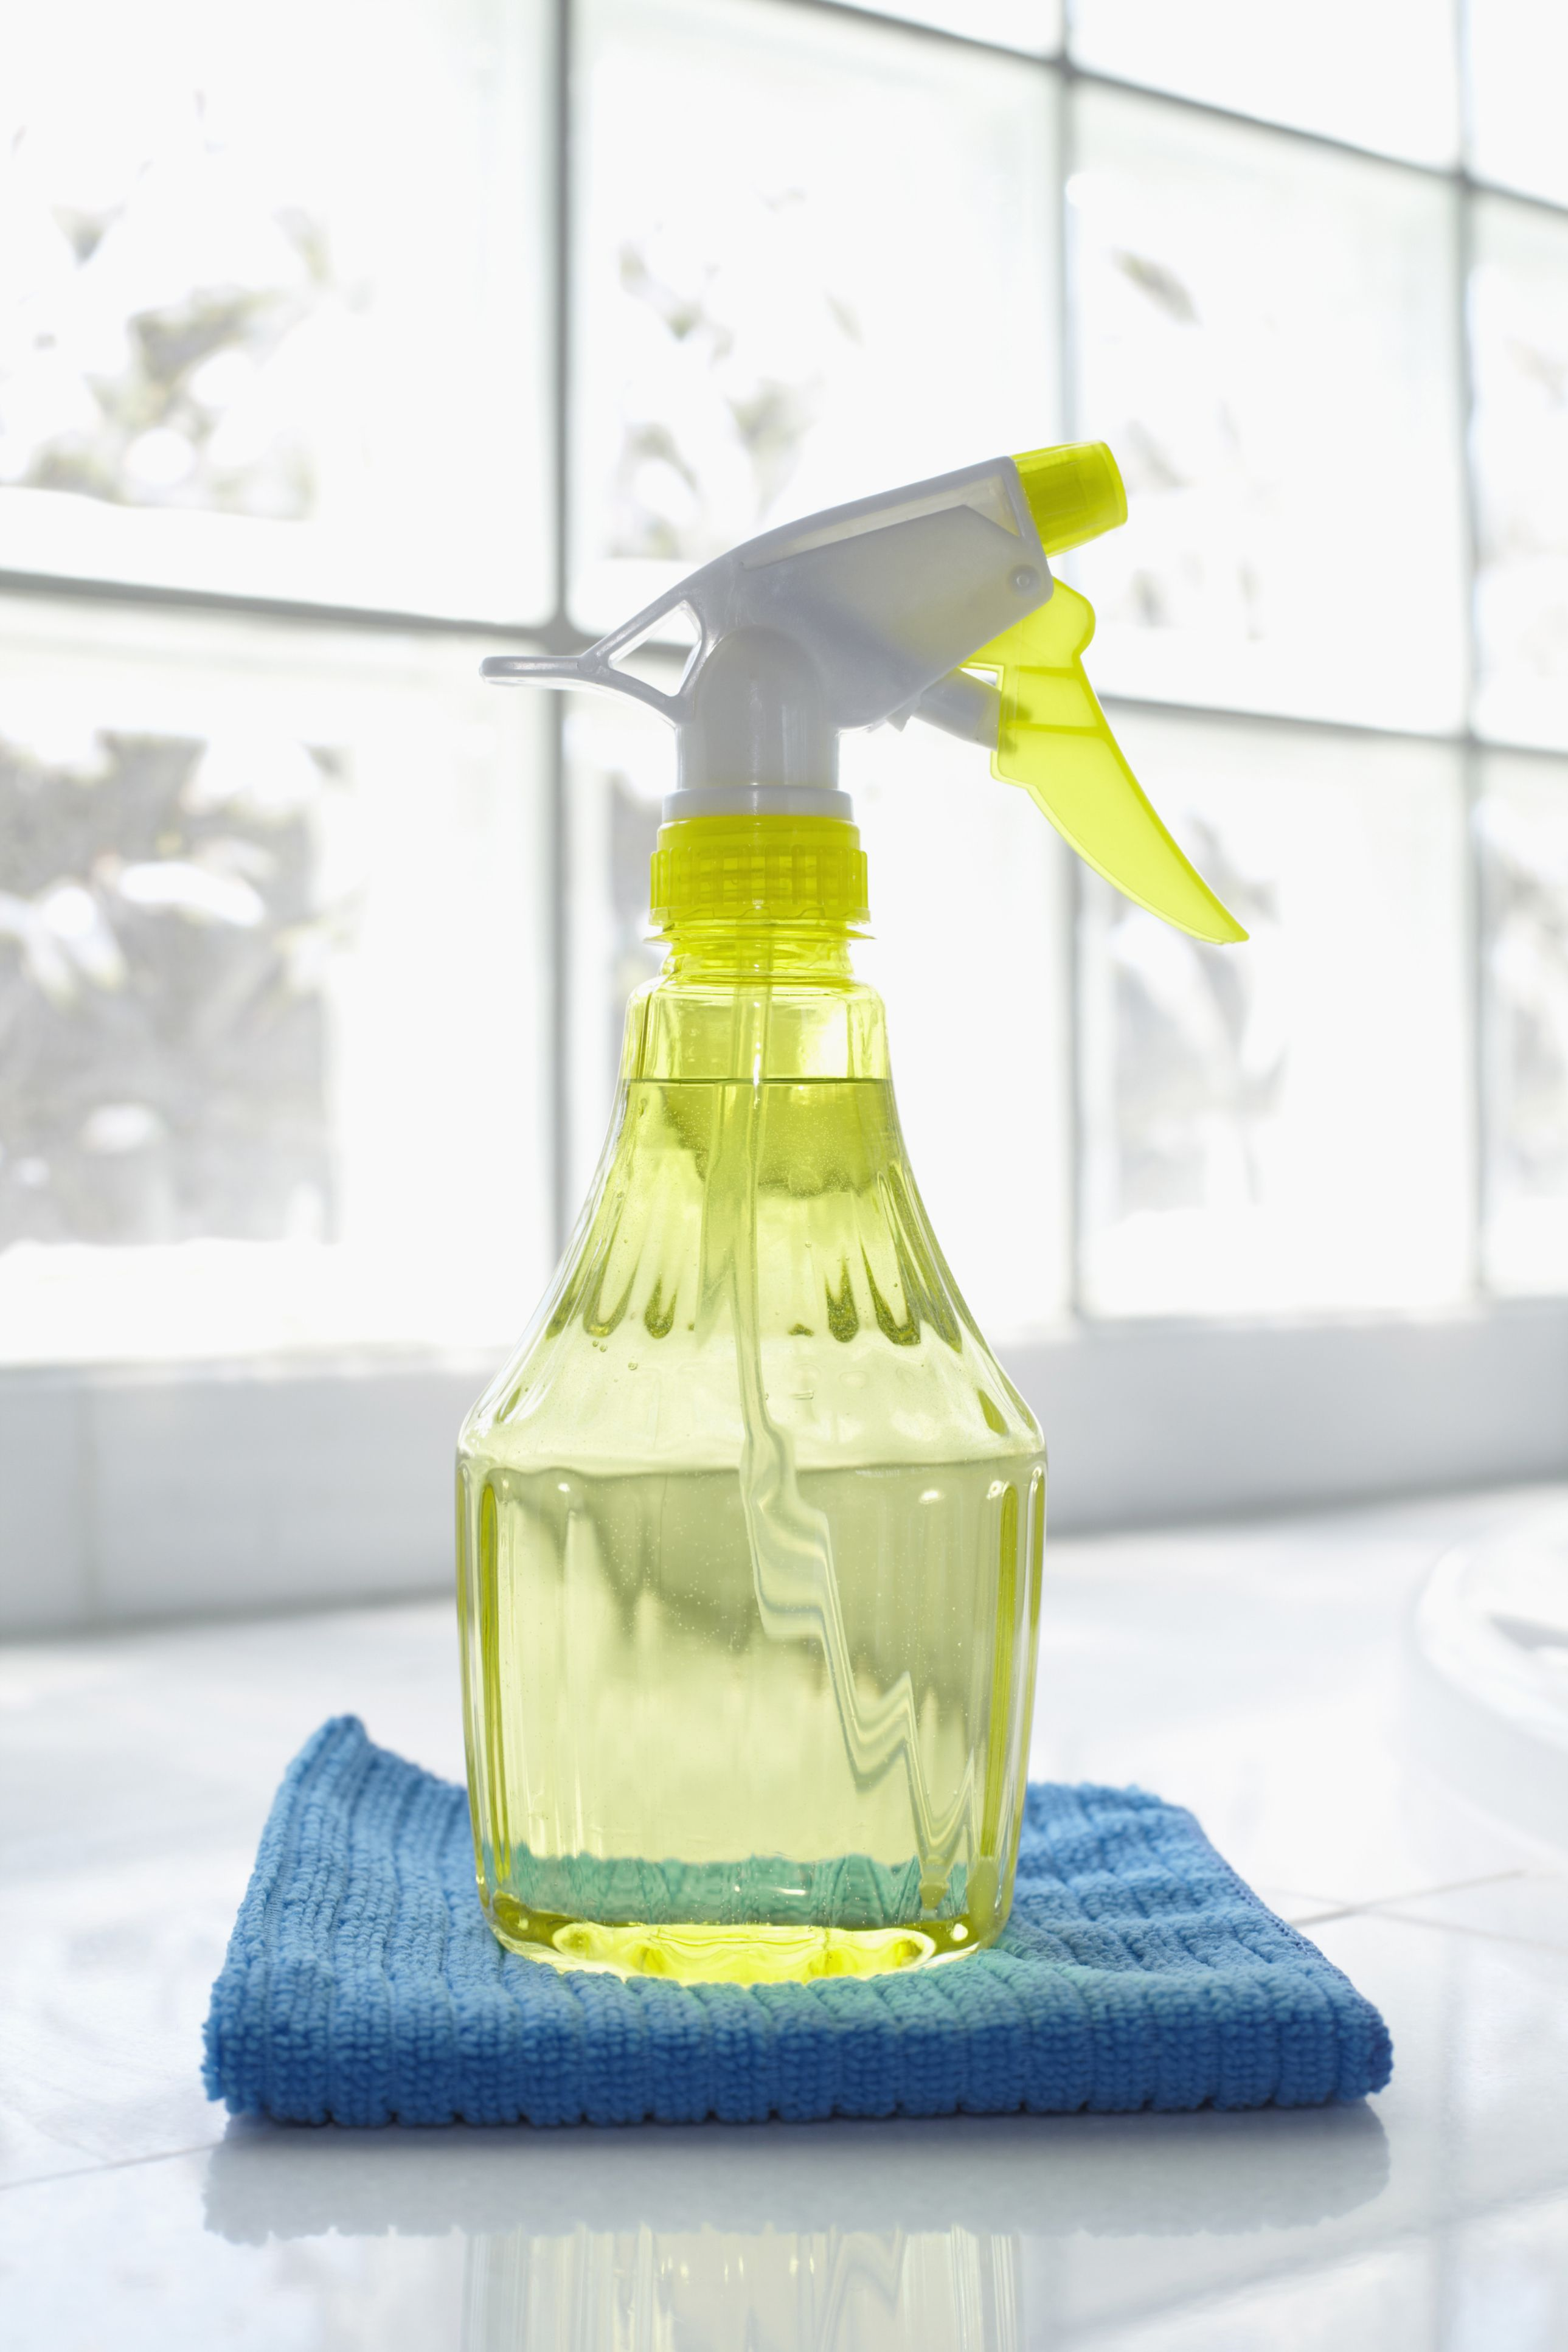 "Here's <a target=""_blank"" href=""http://www.goodhousekeeping.com/home/cleaning/tips/a24885/make-at-home-cleaners/"">the cleaner recipe</a> that will make nearly every surface gleam (especially kitchen counters, appliances, and inside the refrigerator). Combine 4 tablespoons <a target=""_blank"" href=""http://www.goodhousekeeping.com/home/cleaning/tips/a24885/make-at-home-cleaners/"">baking soda</a> and 1 quart warm water, and use it with a sponge to wipe messes away."